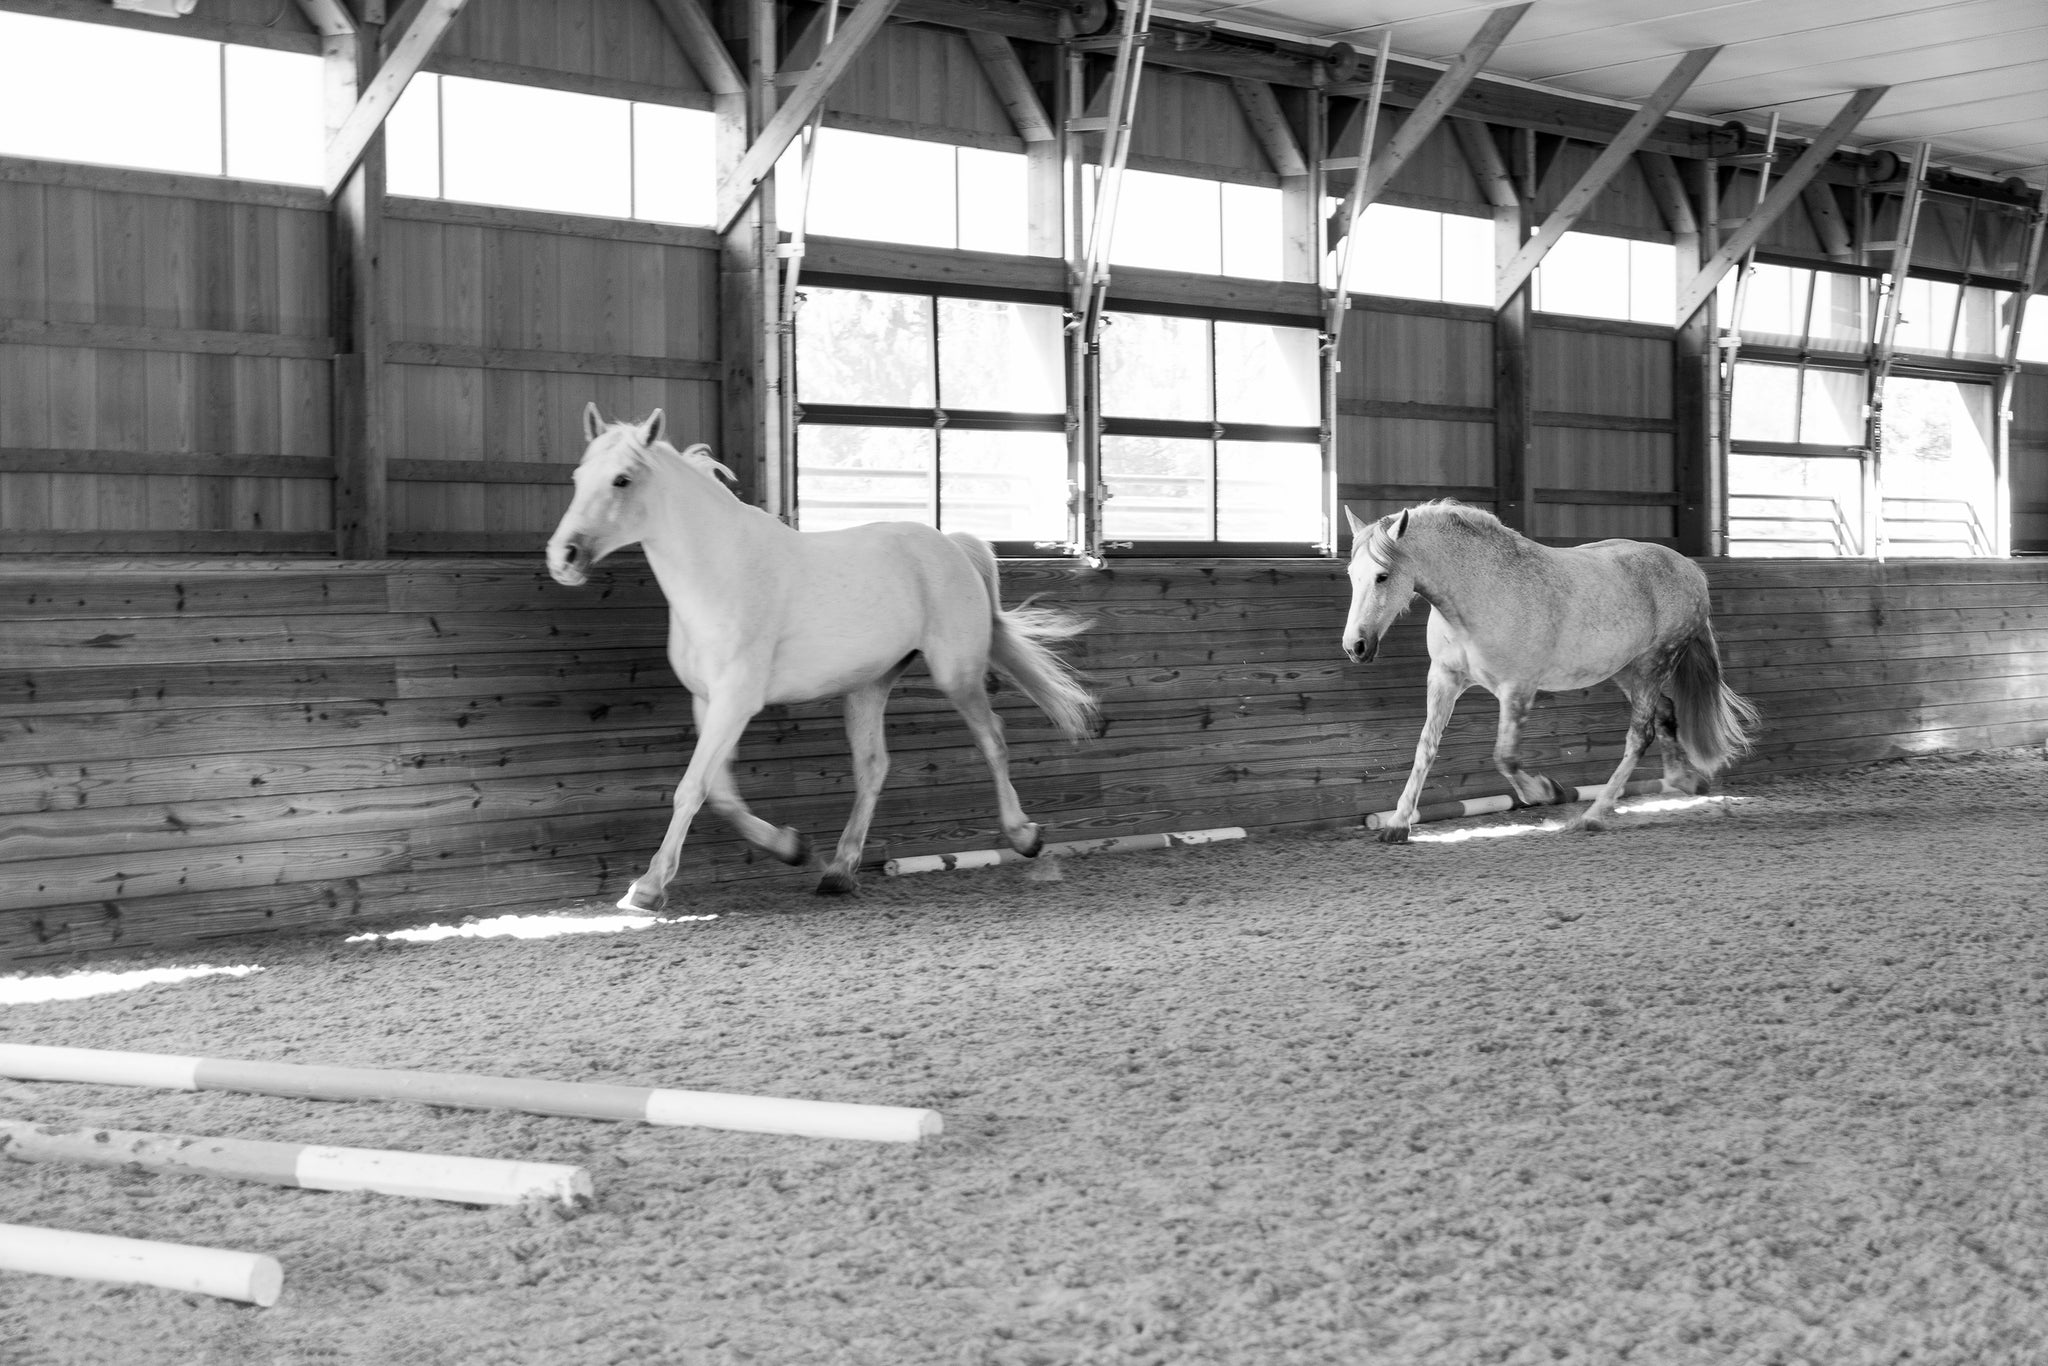 It's What the World Needs': Gateway Horseworks Gives